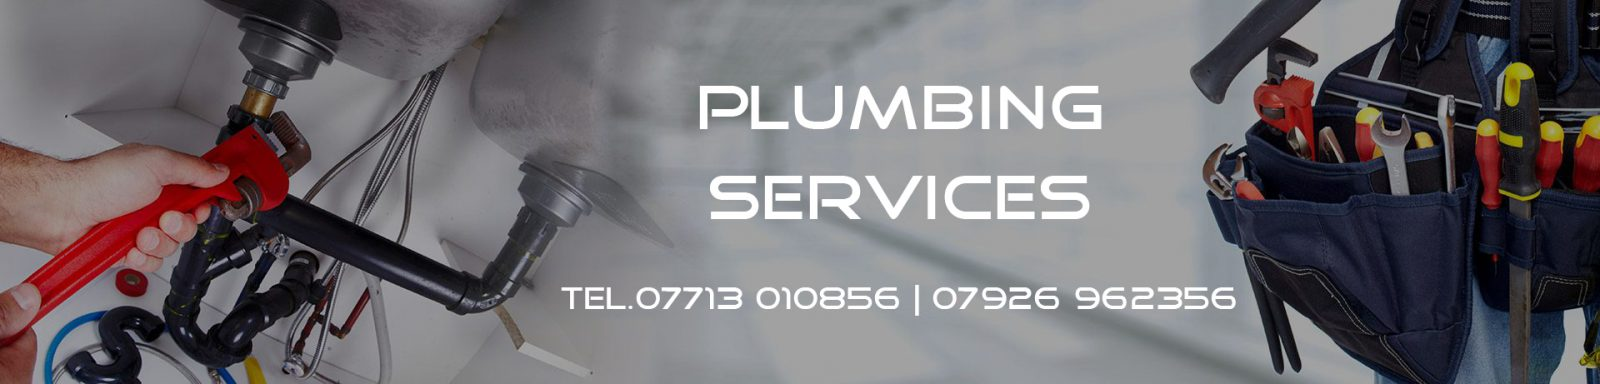 Plumbing-services-plumbers-house-extensions-london